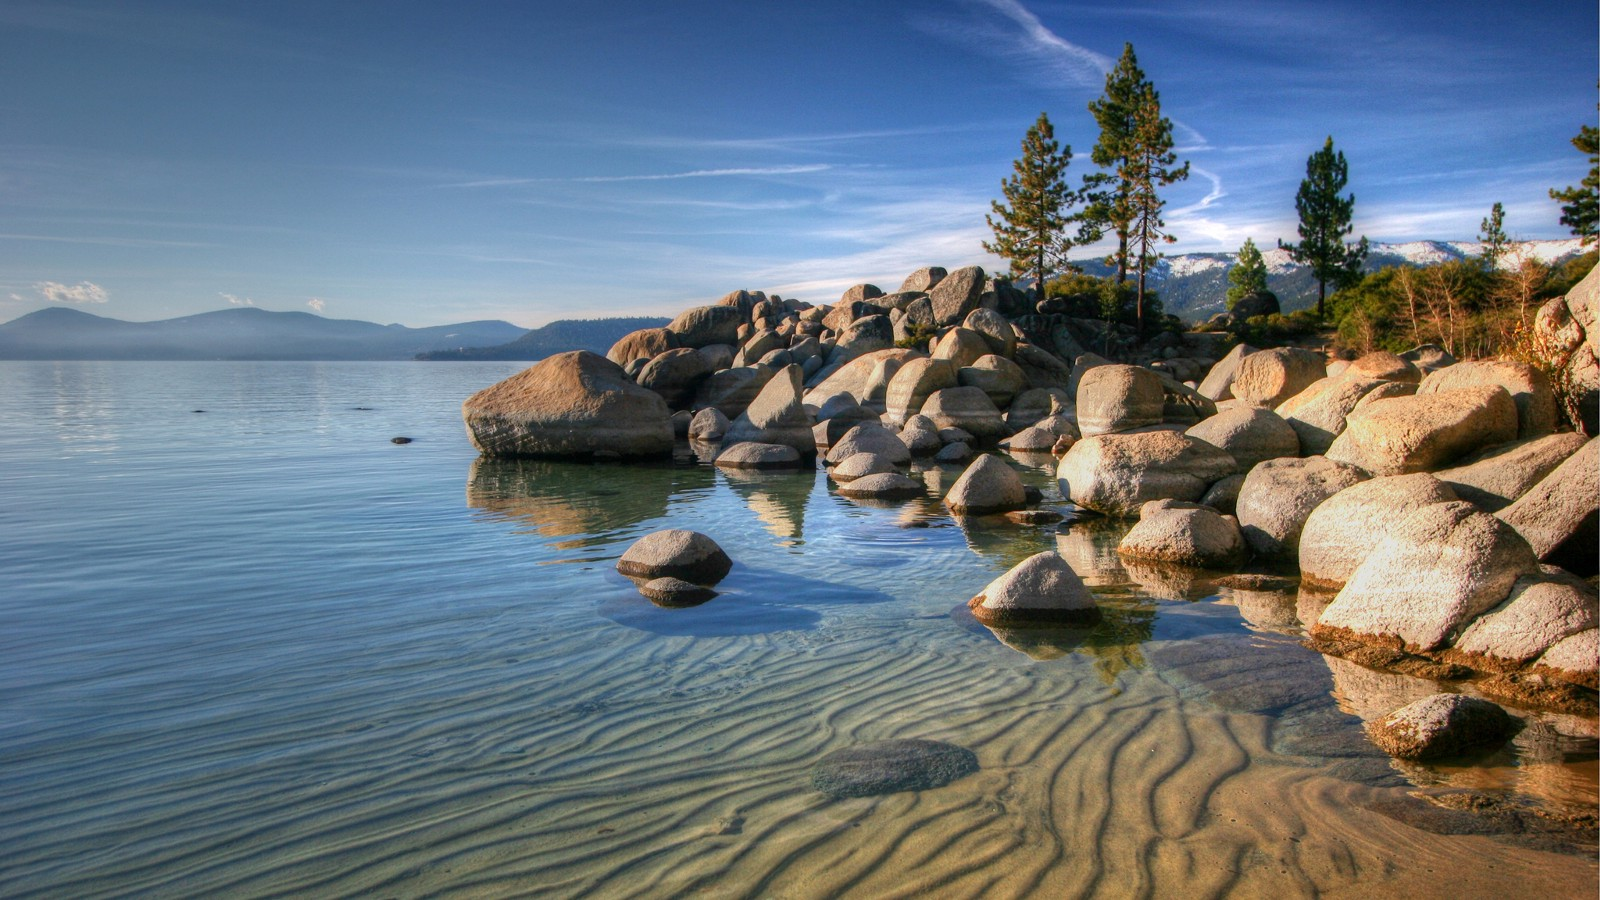 Late afternoon at Sand Harbor, Lake Tahoe, Nevada